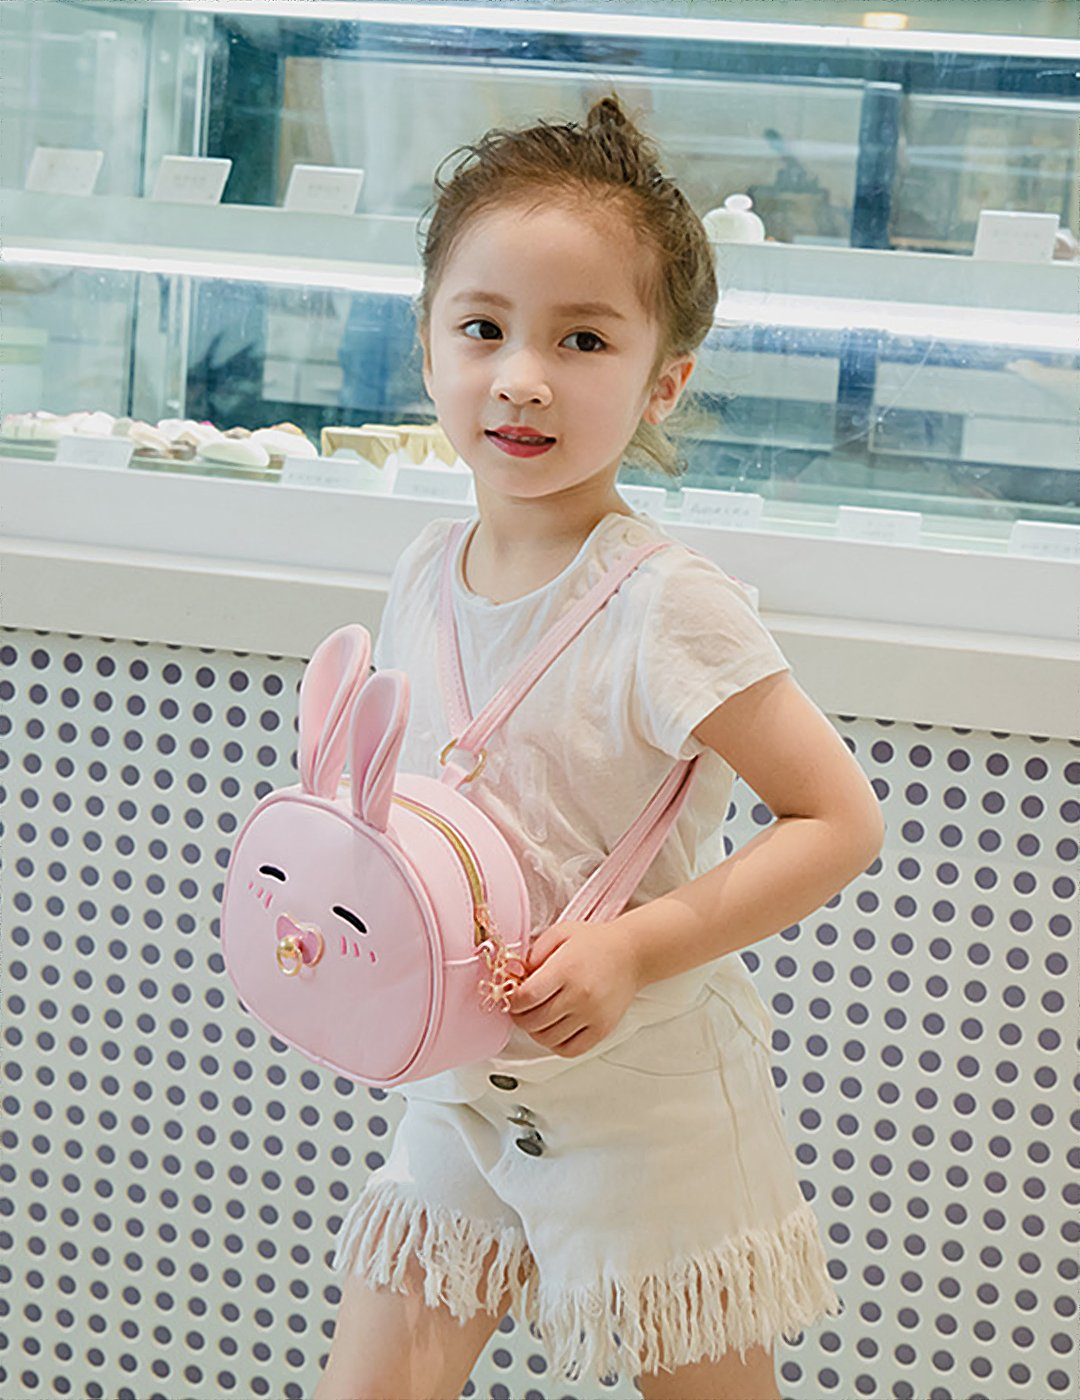 CMK Trendy Kids My First Purse for Toddler Kids Girls Cute Shoulder Bag Messenger Bags with Bunny Ear and Double Slide Zipper Novelty Birthday Gift (82011_Pink) by CMK Trendy Kids (Image #3)